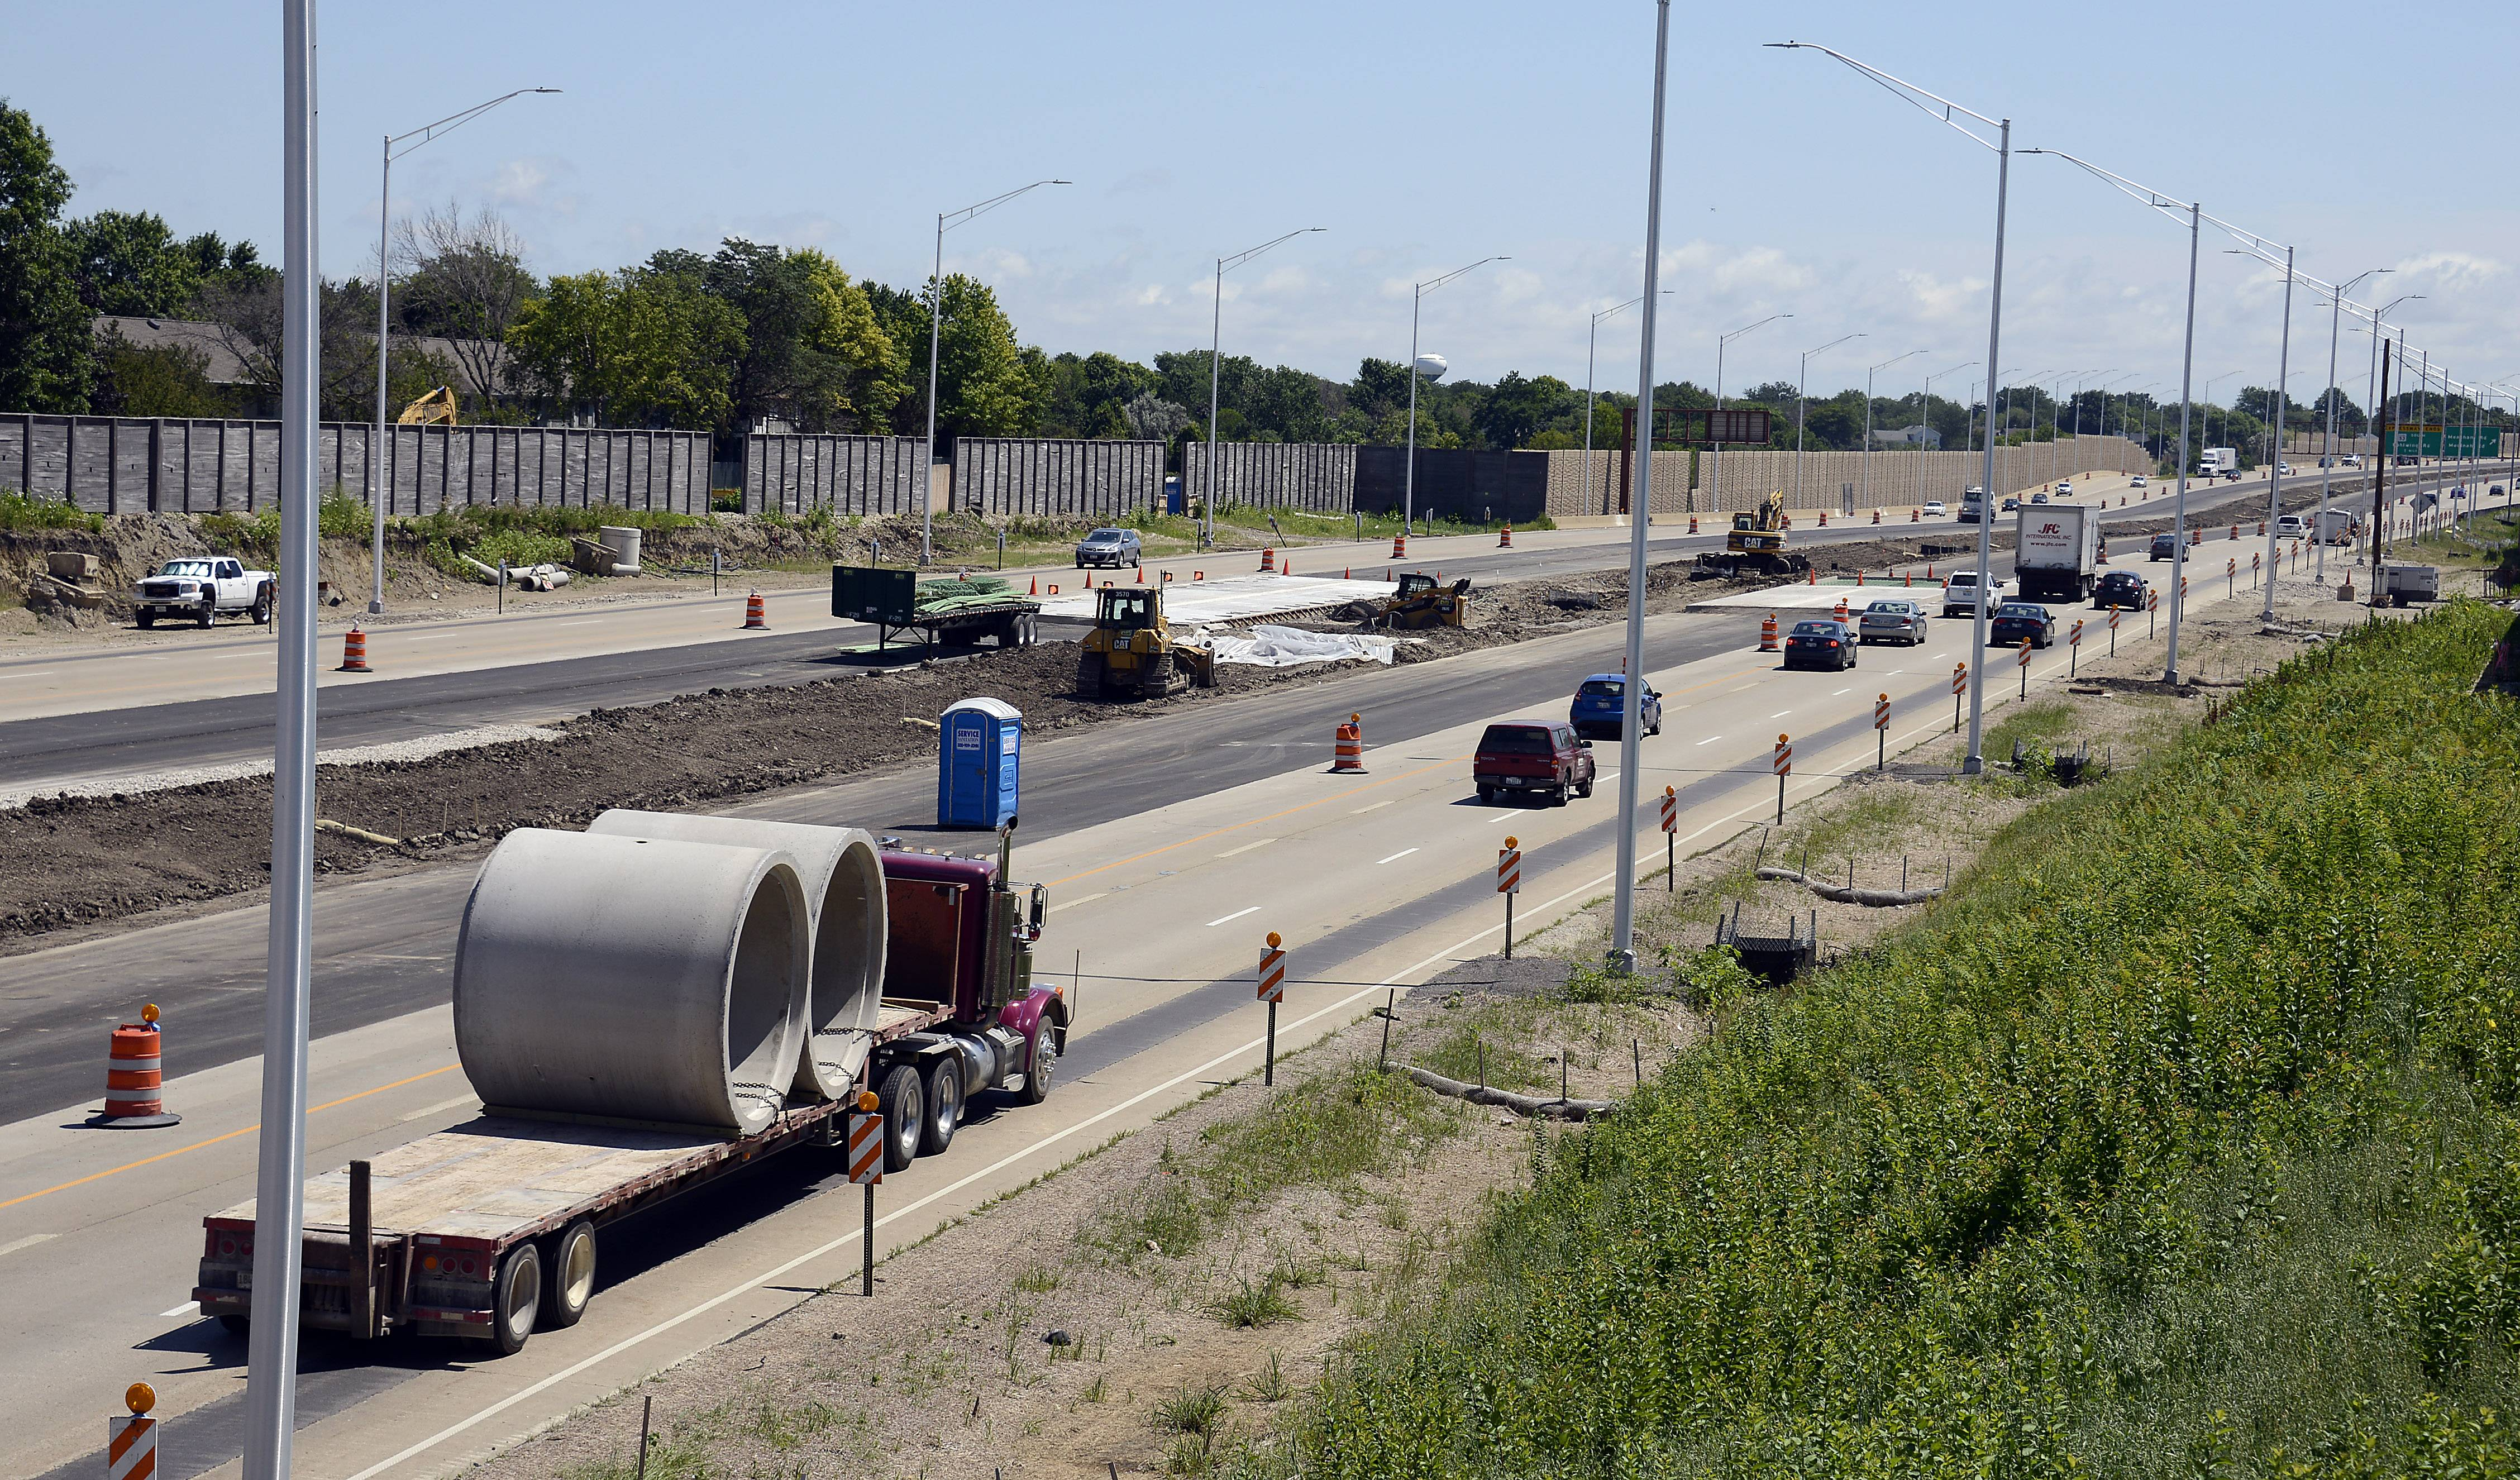 The new expressway near Interstate 290 and the Elgin-O'Hare has traffic in that area at a standstill during rush hour.